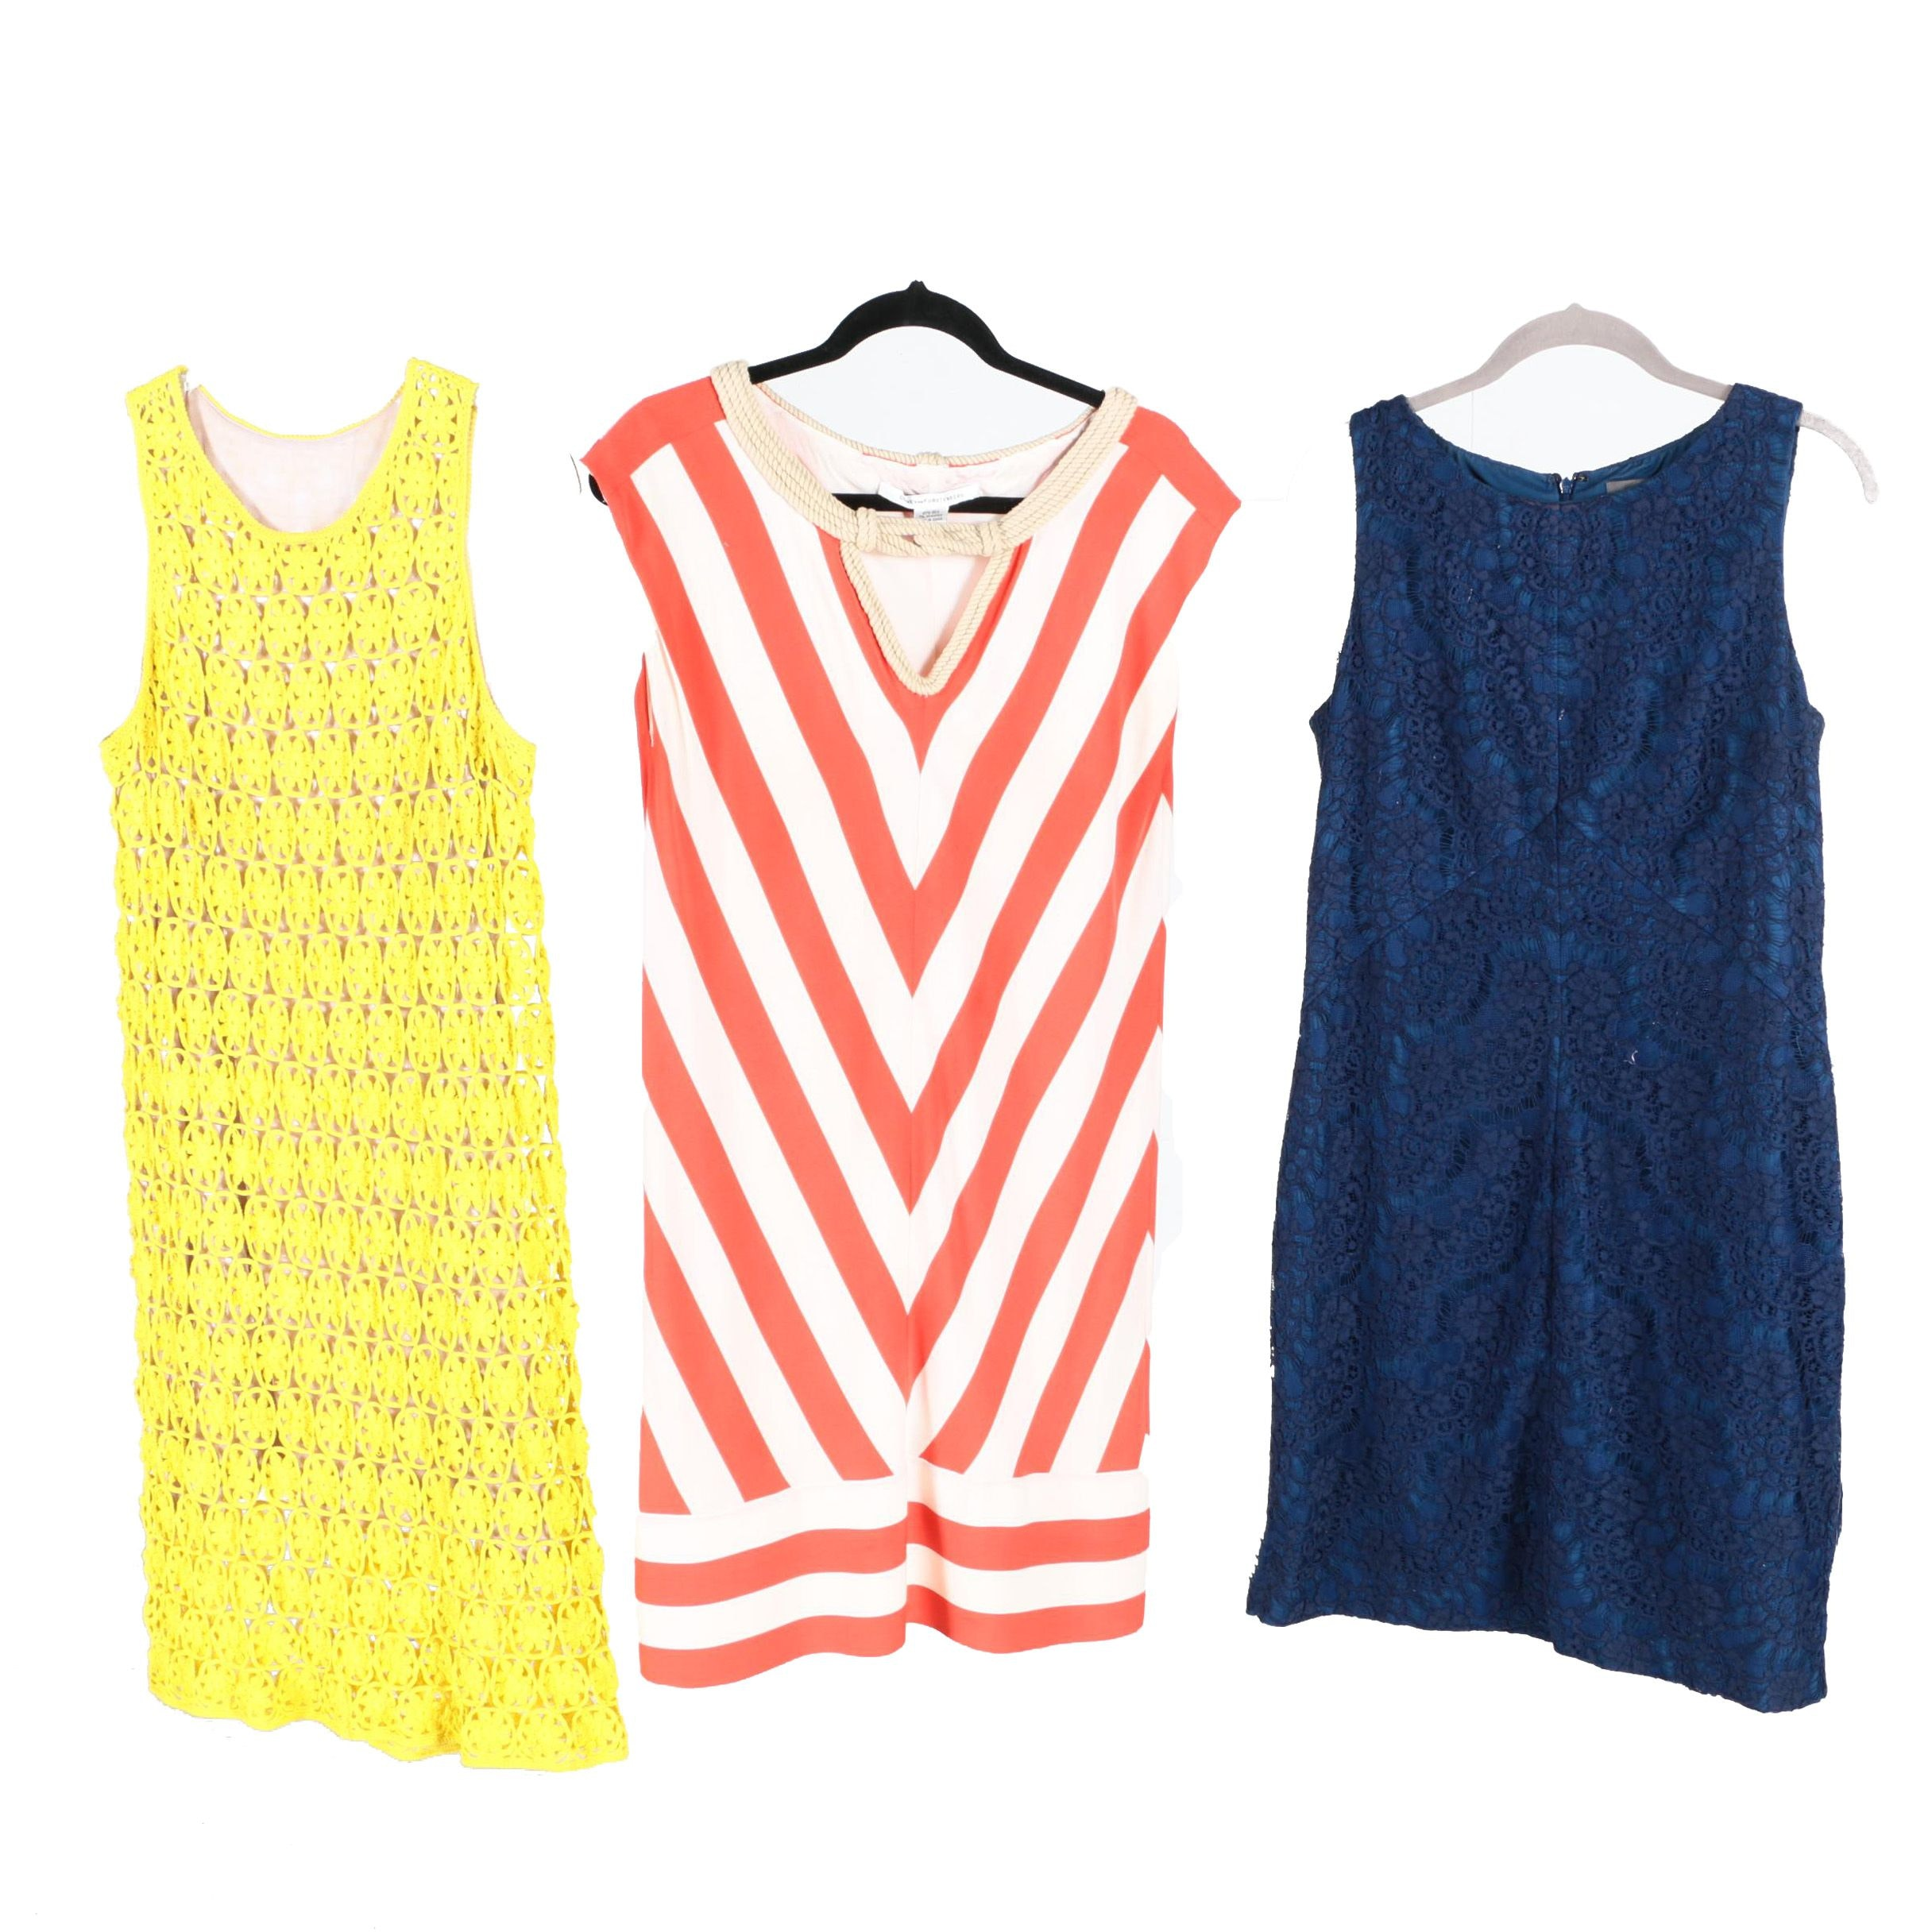 Sleeveless Dresses Featuring Diane von Furstenberg and Vince Camuto